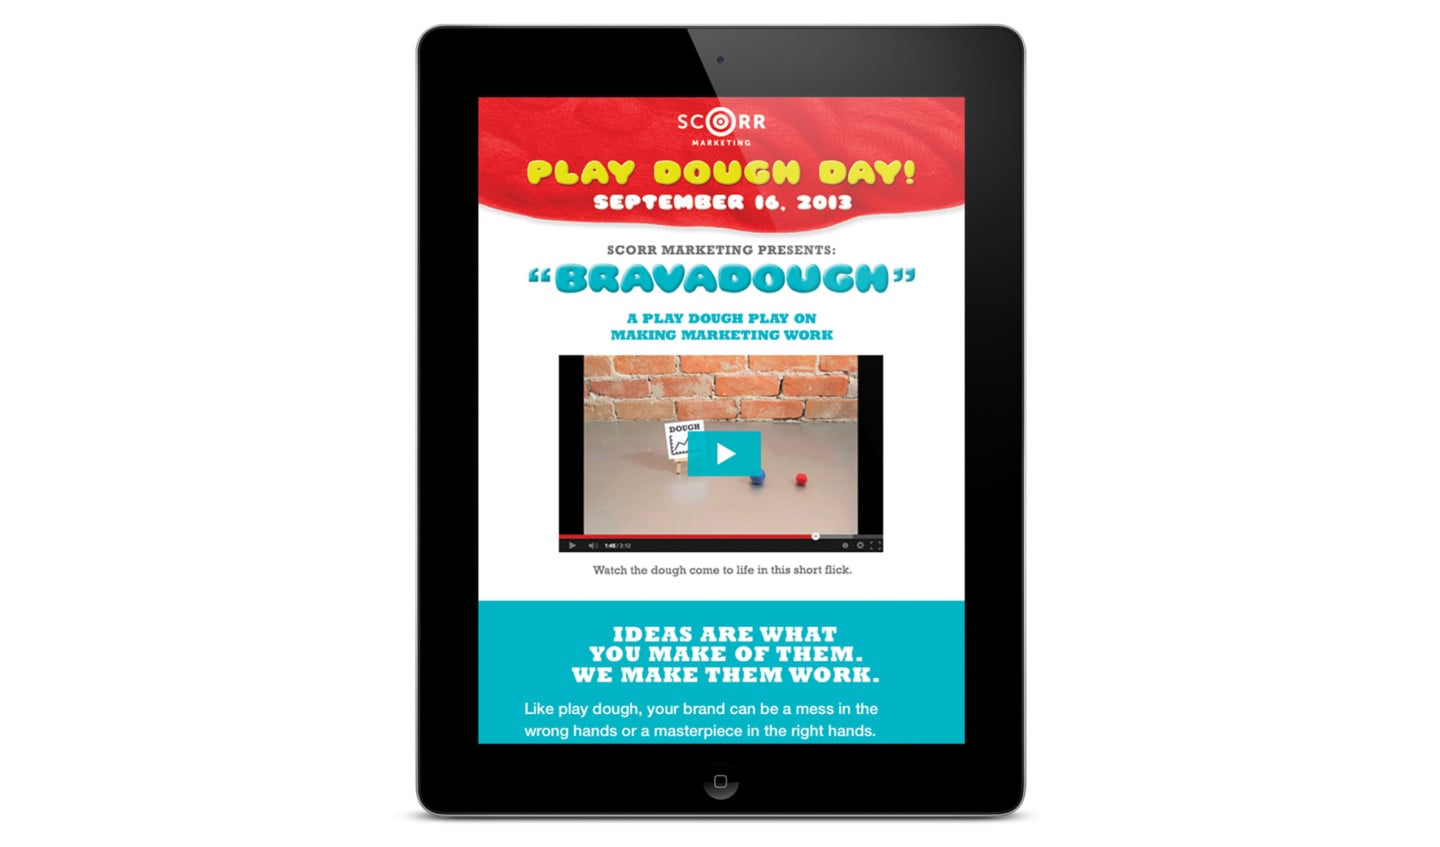 Play Dough Day Email